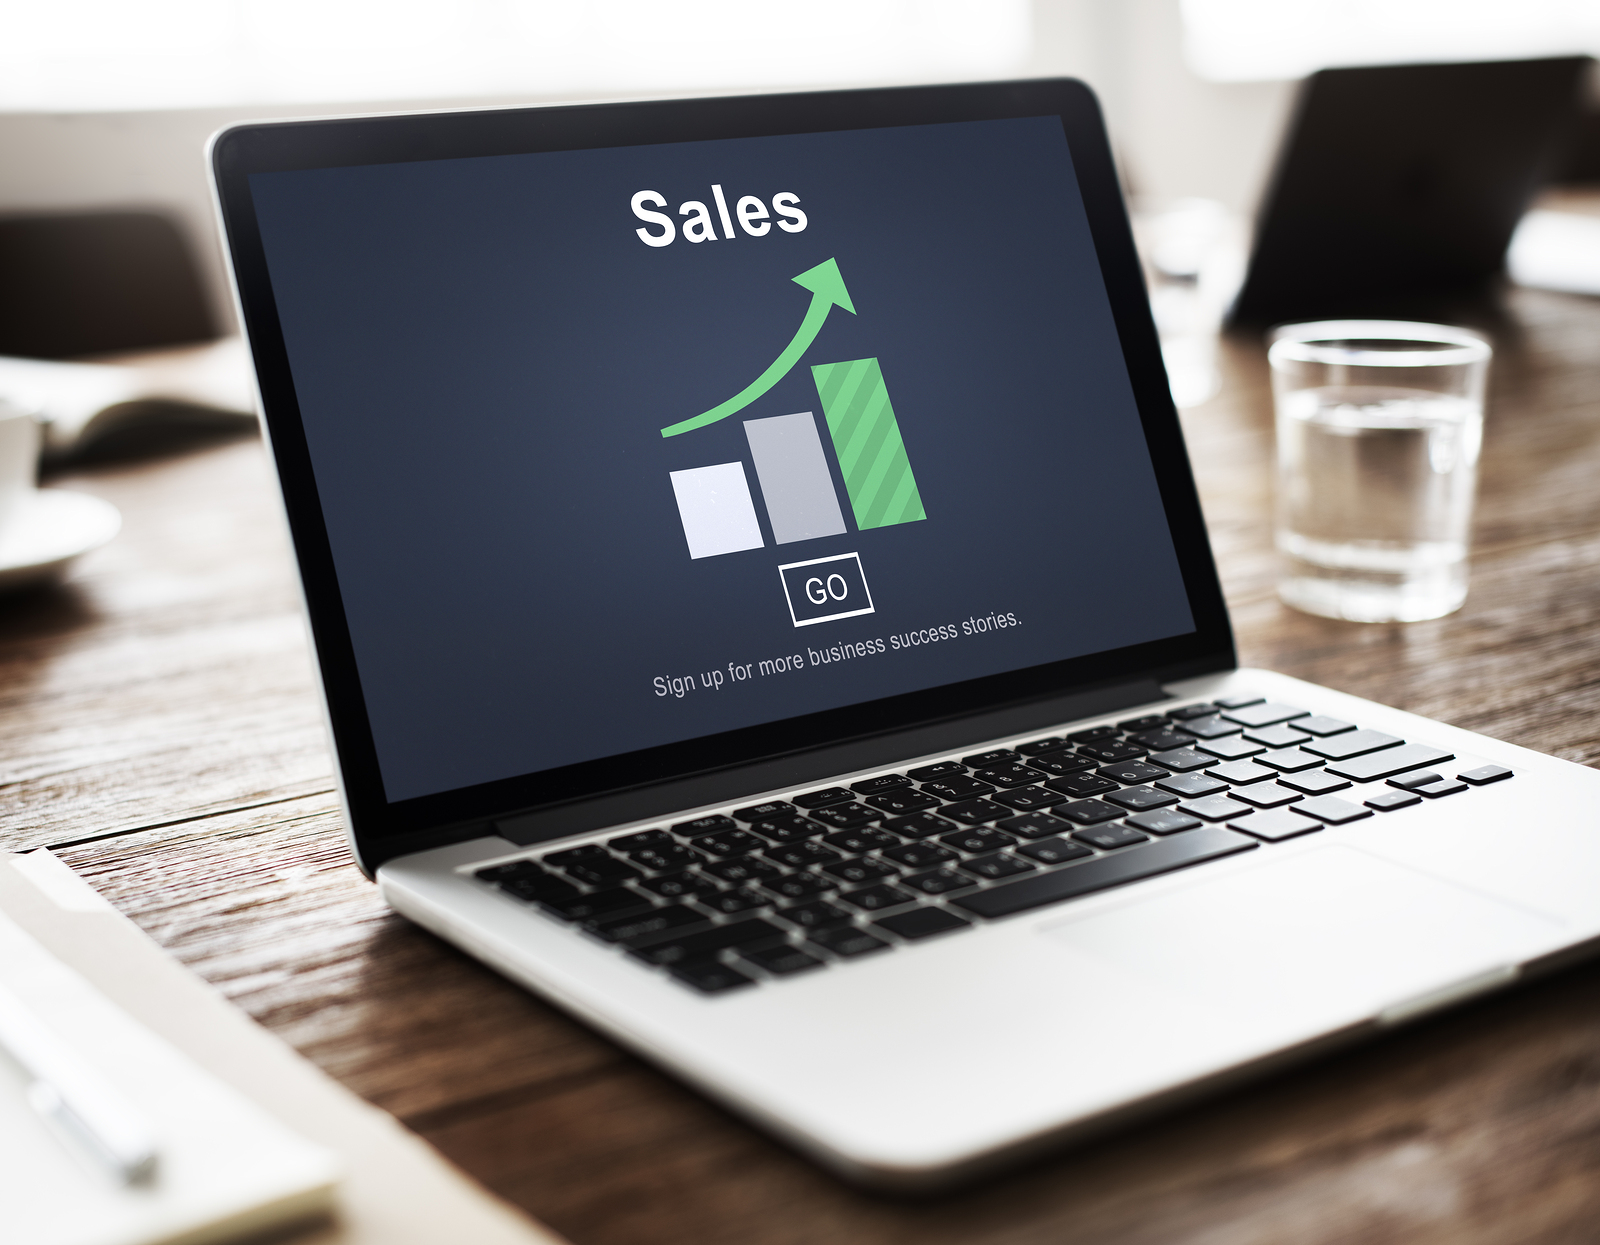 Sales Selling Commerce mockup on a laptop